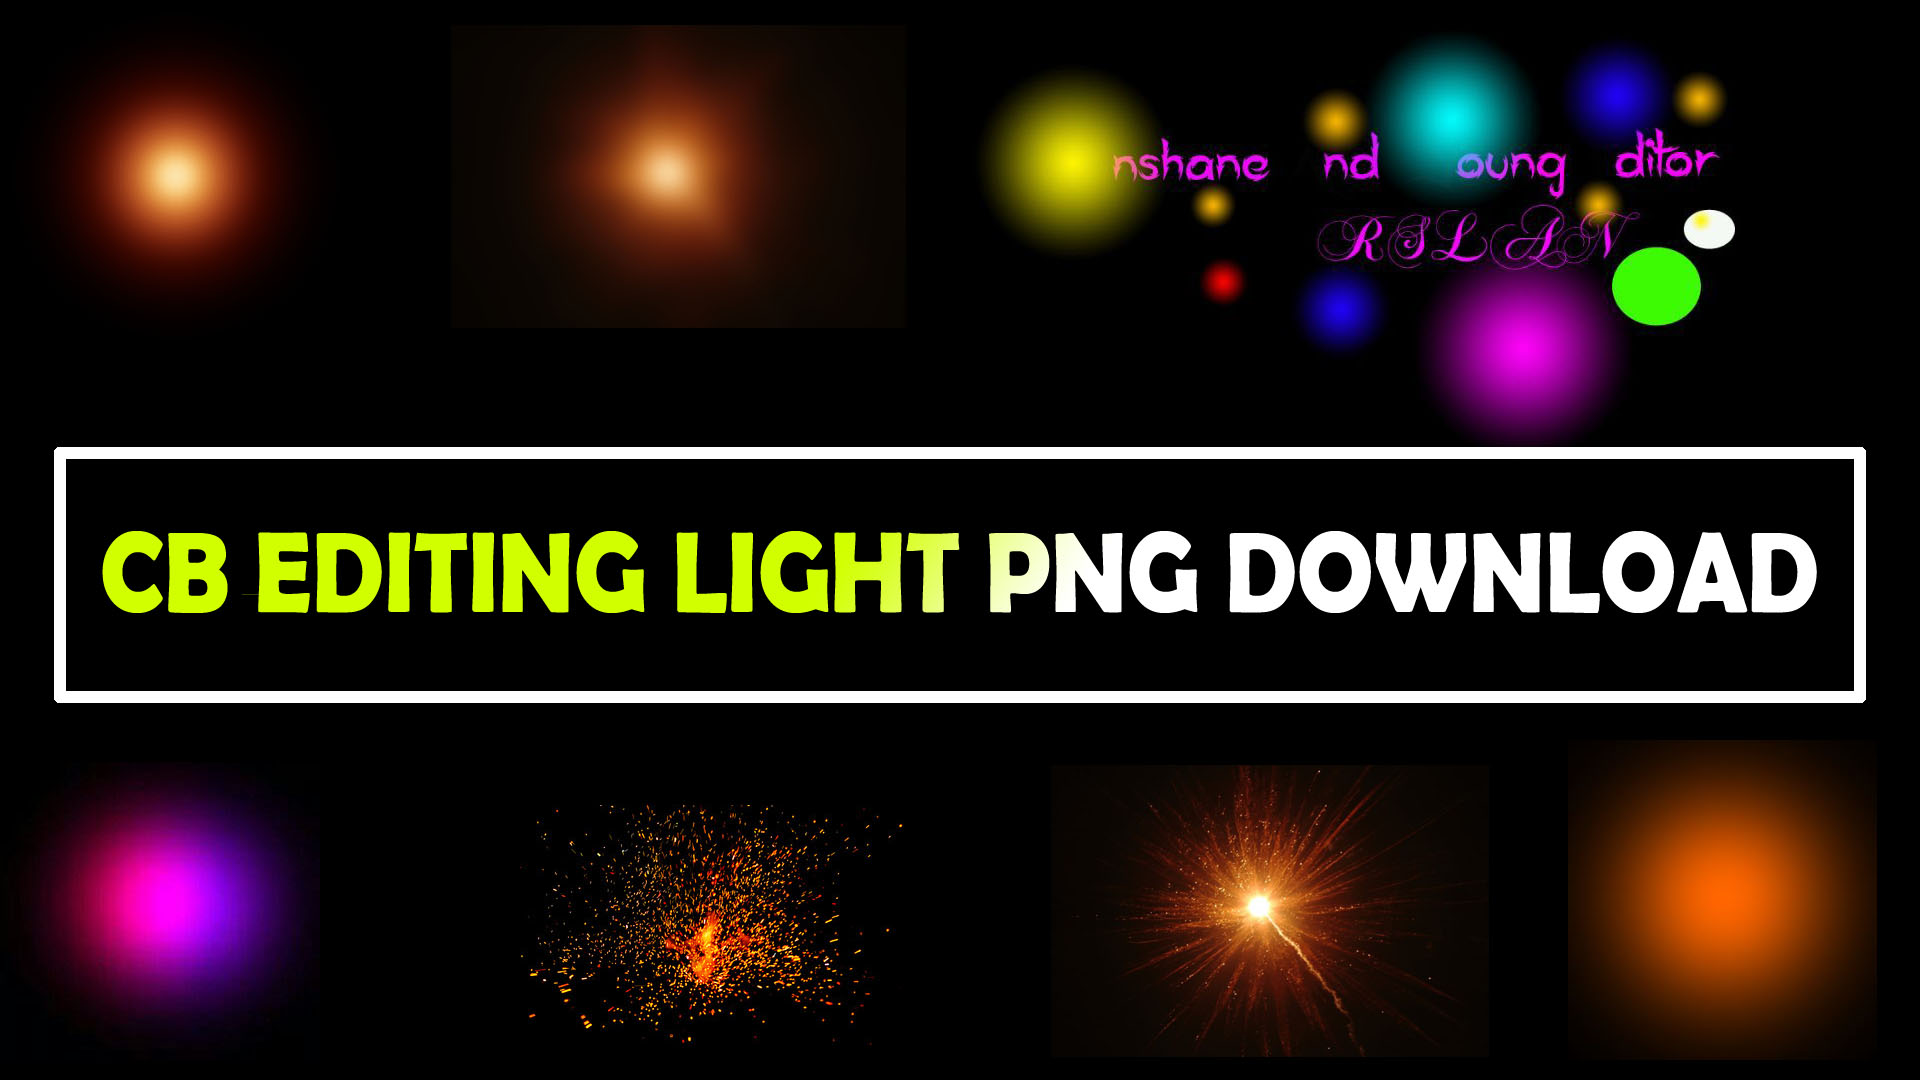 Download Free png New ] All Editing 200+ CB light PNG Zip